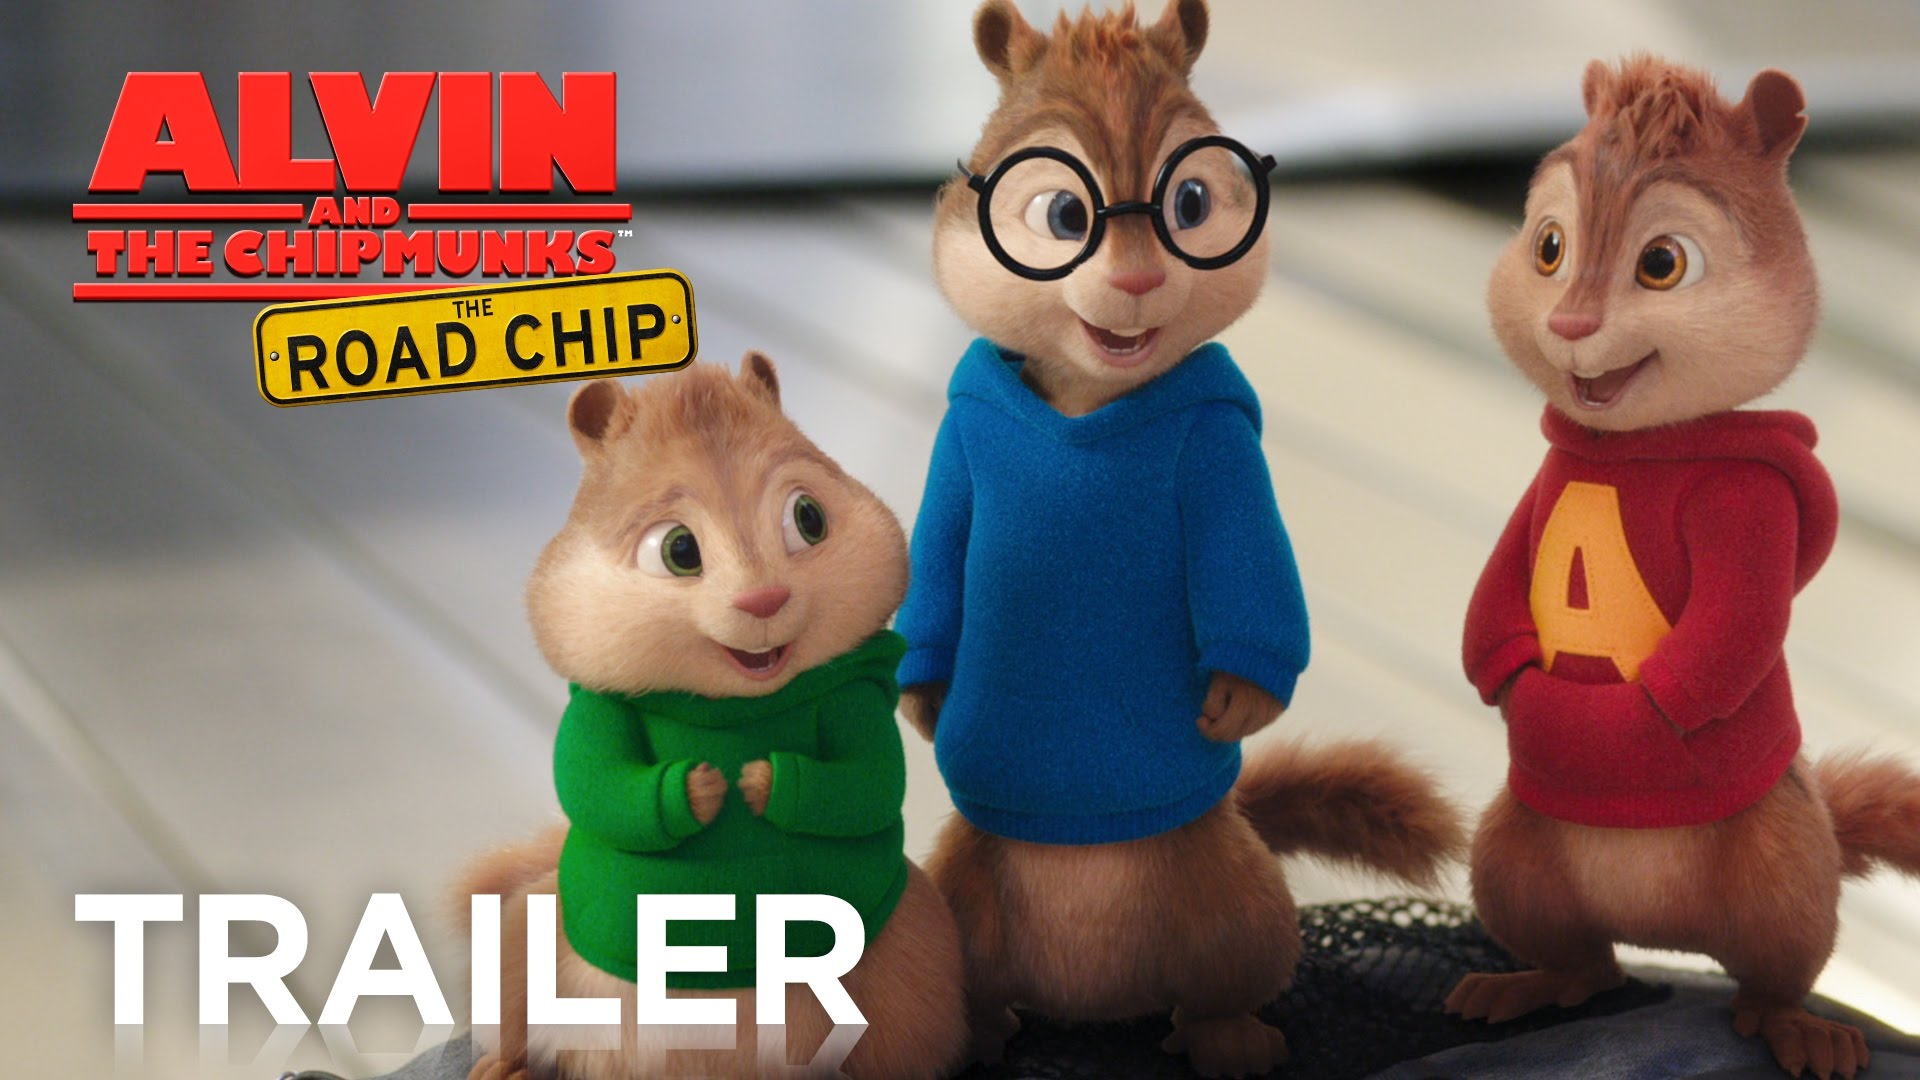 Alvin and the Chipmunks: The Road Chip | Official Trailer 2 [HD] | 20th Century FOX